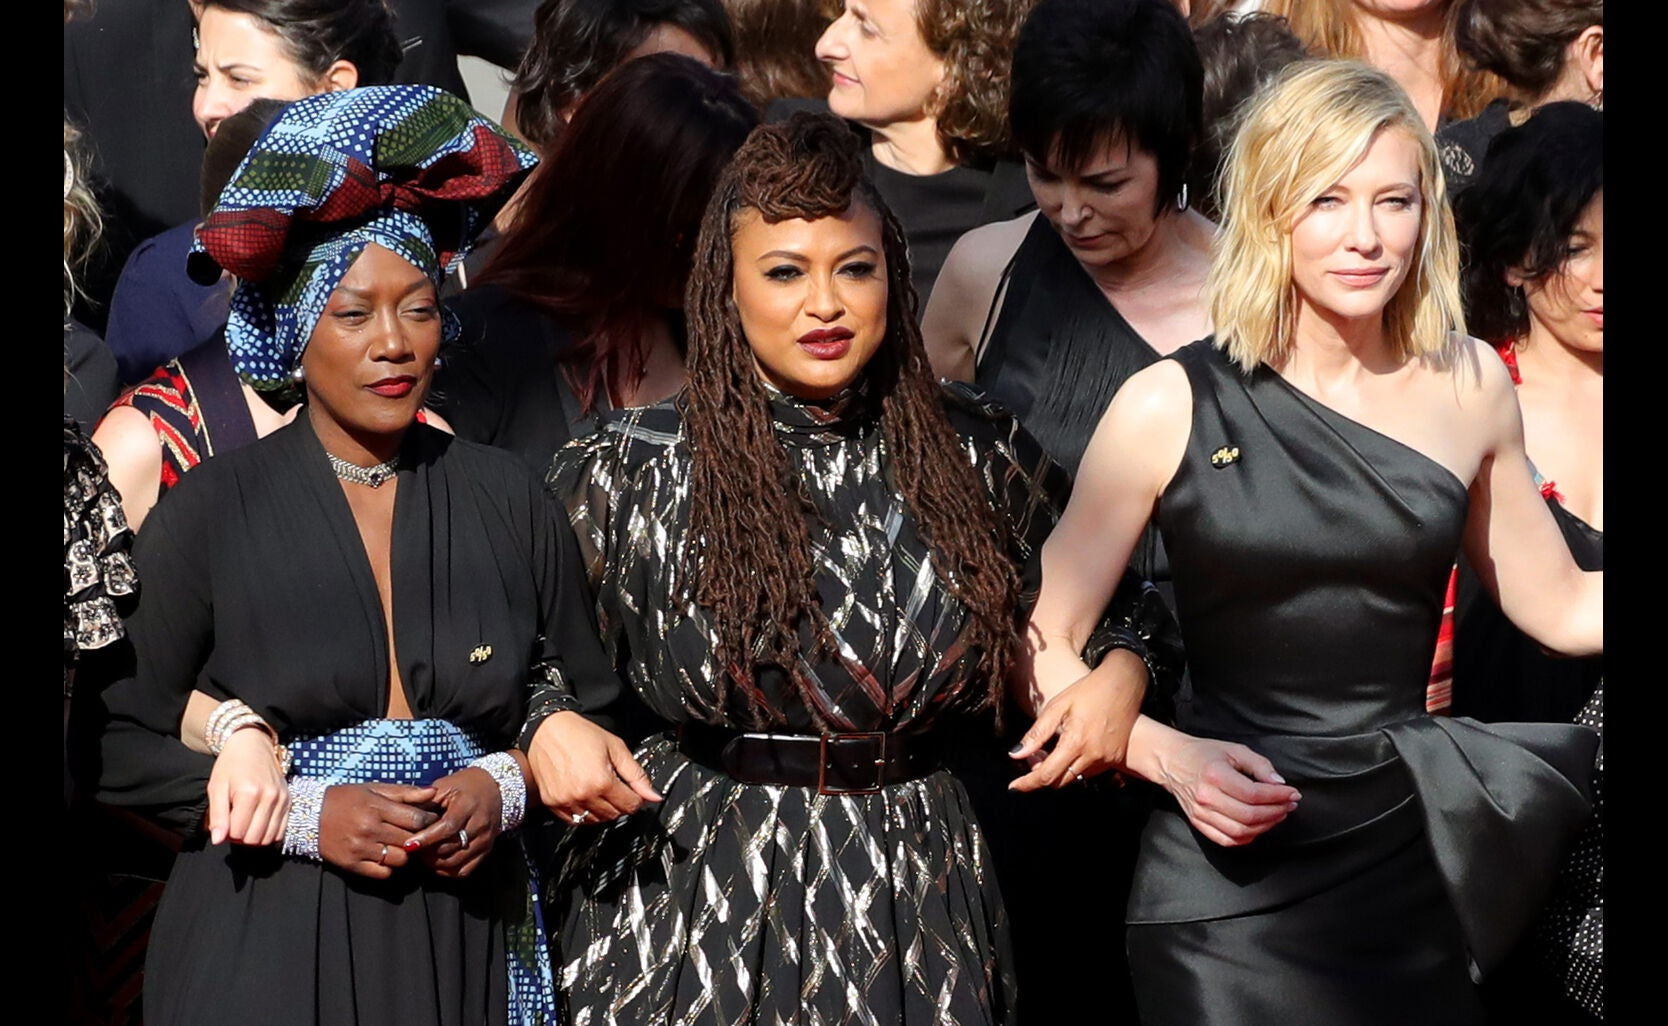 Khadja Nin, Ava DuVernay and Cate Blanchett at 71st annual Cannes Film Festival